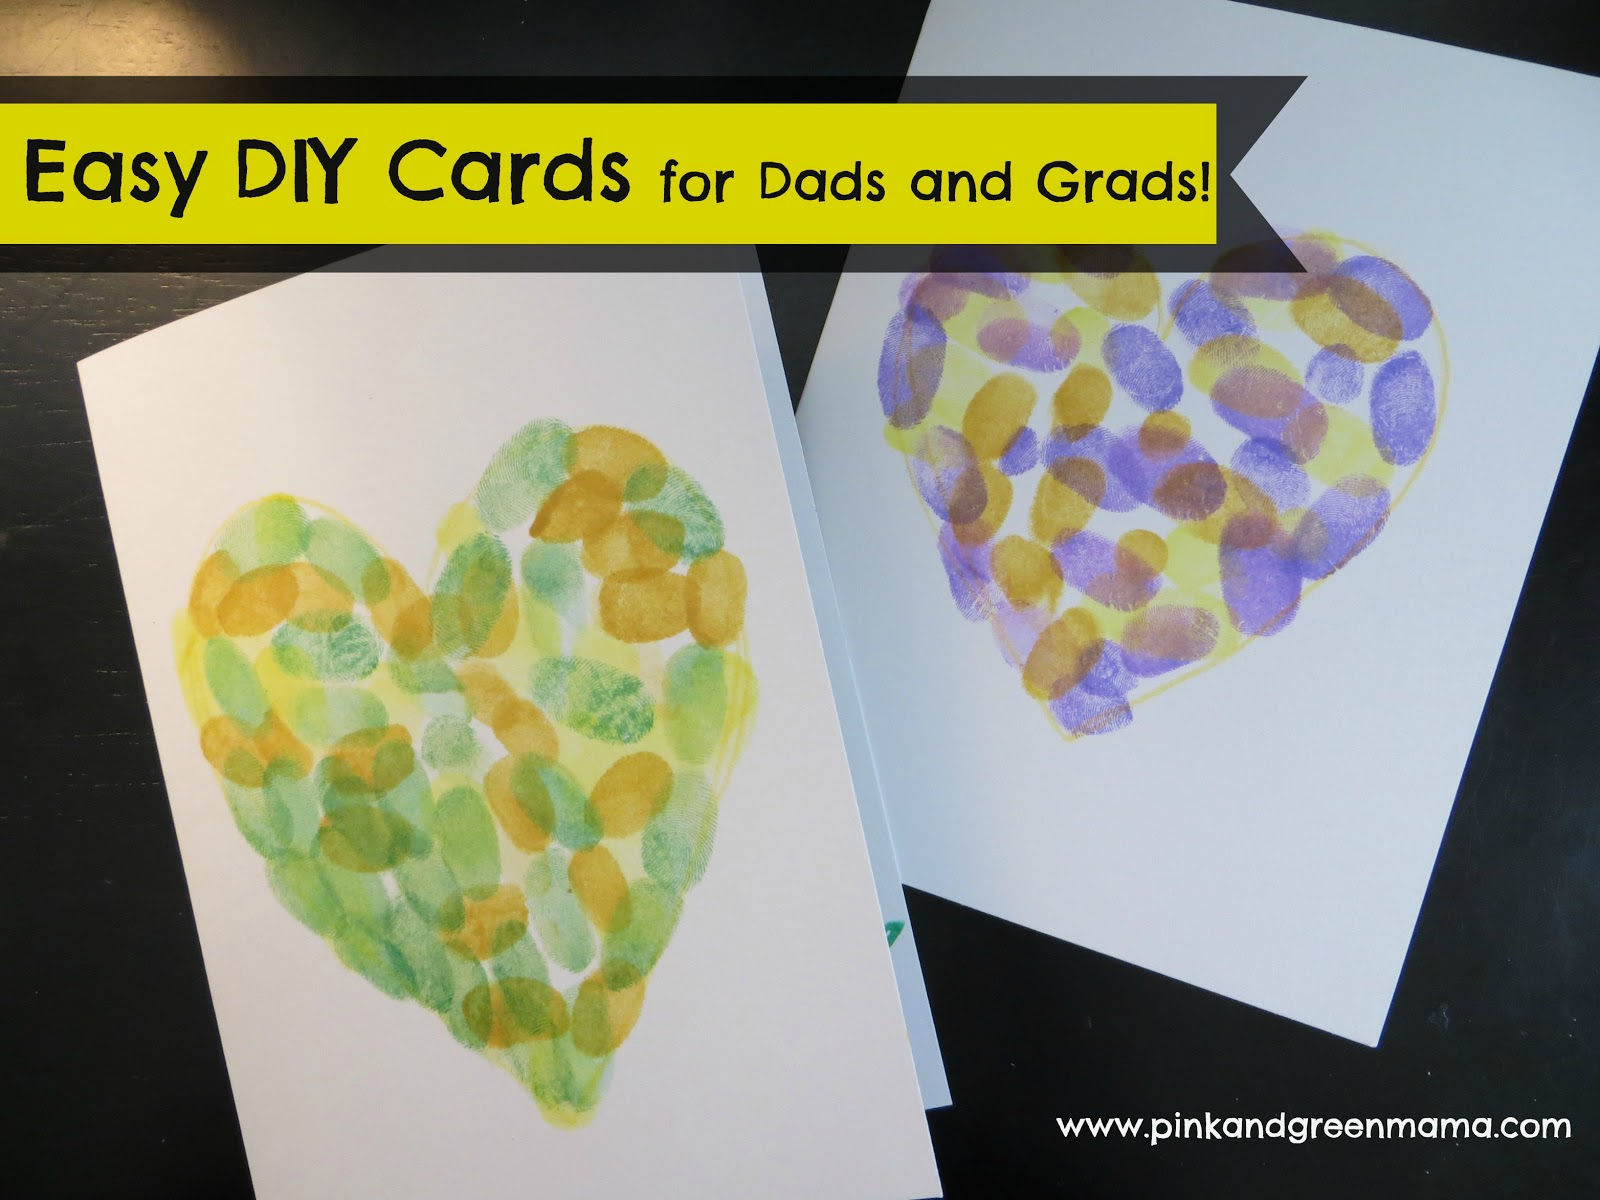 Birthday Cards Diy For Dad ~ Colors birthday card ideas daughter together with diy dad